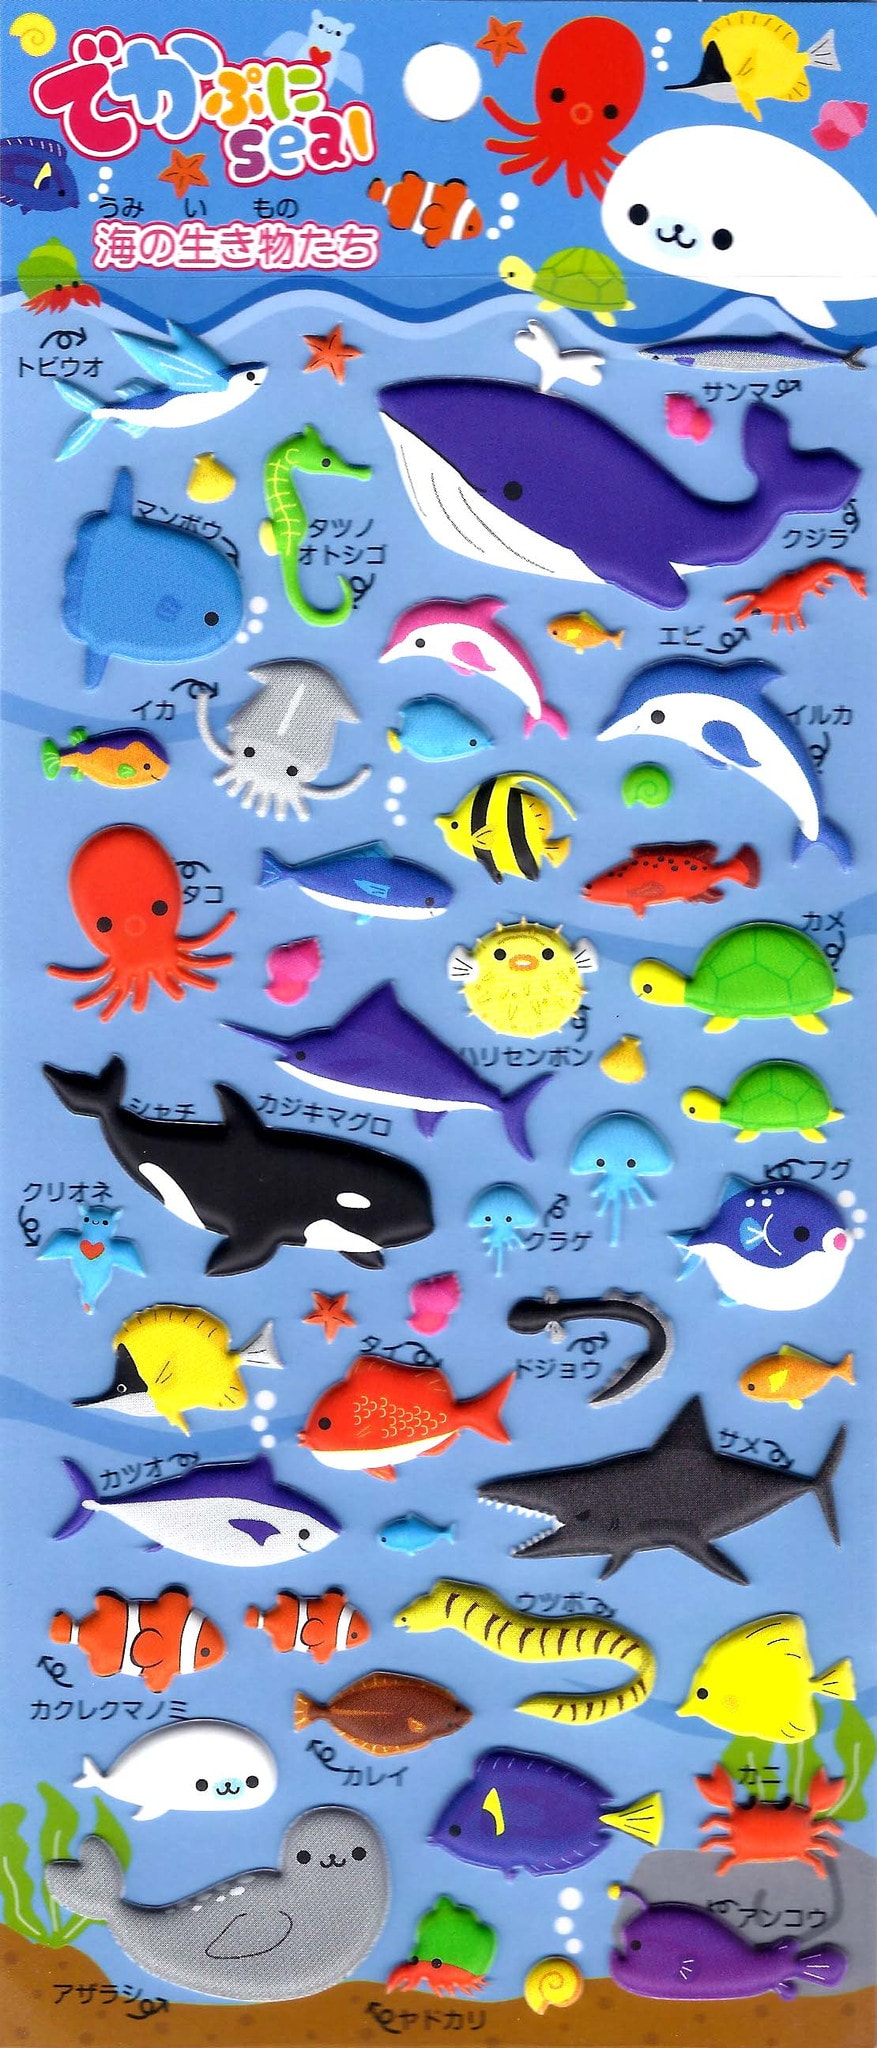 mixed-sea-creatures-animal-themed-puffy-stickers-for-scrapbooking-and-decorating